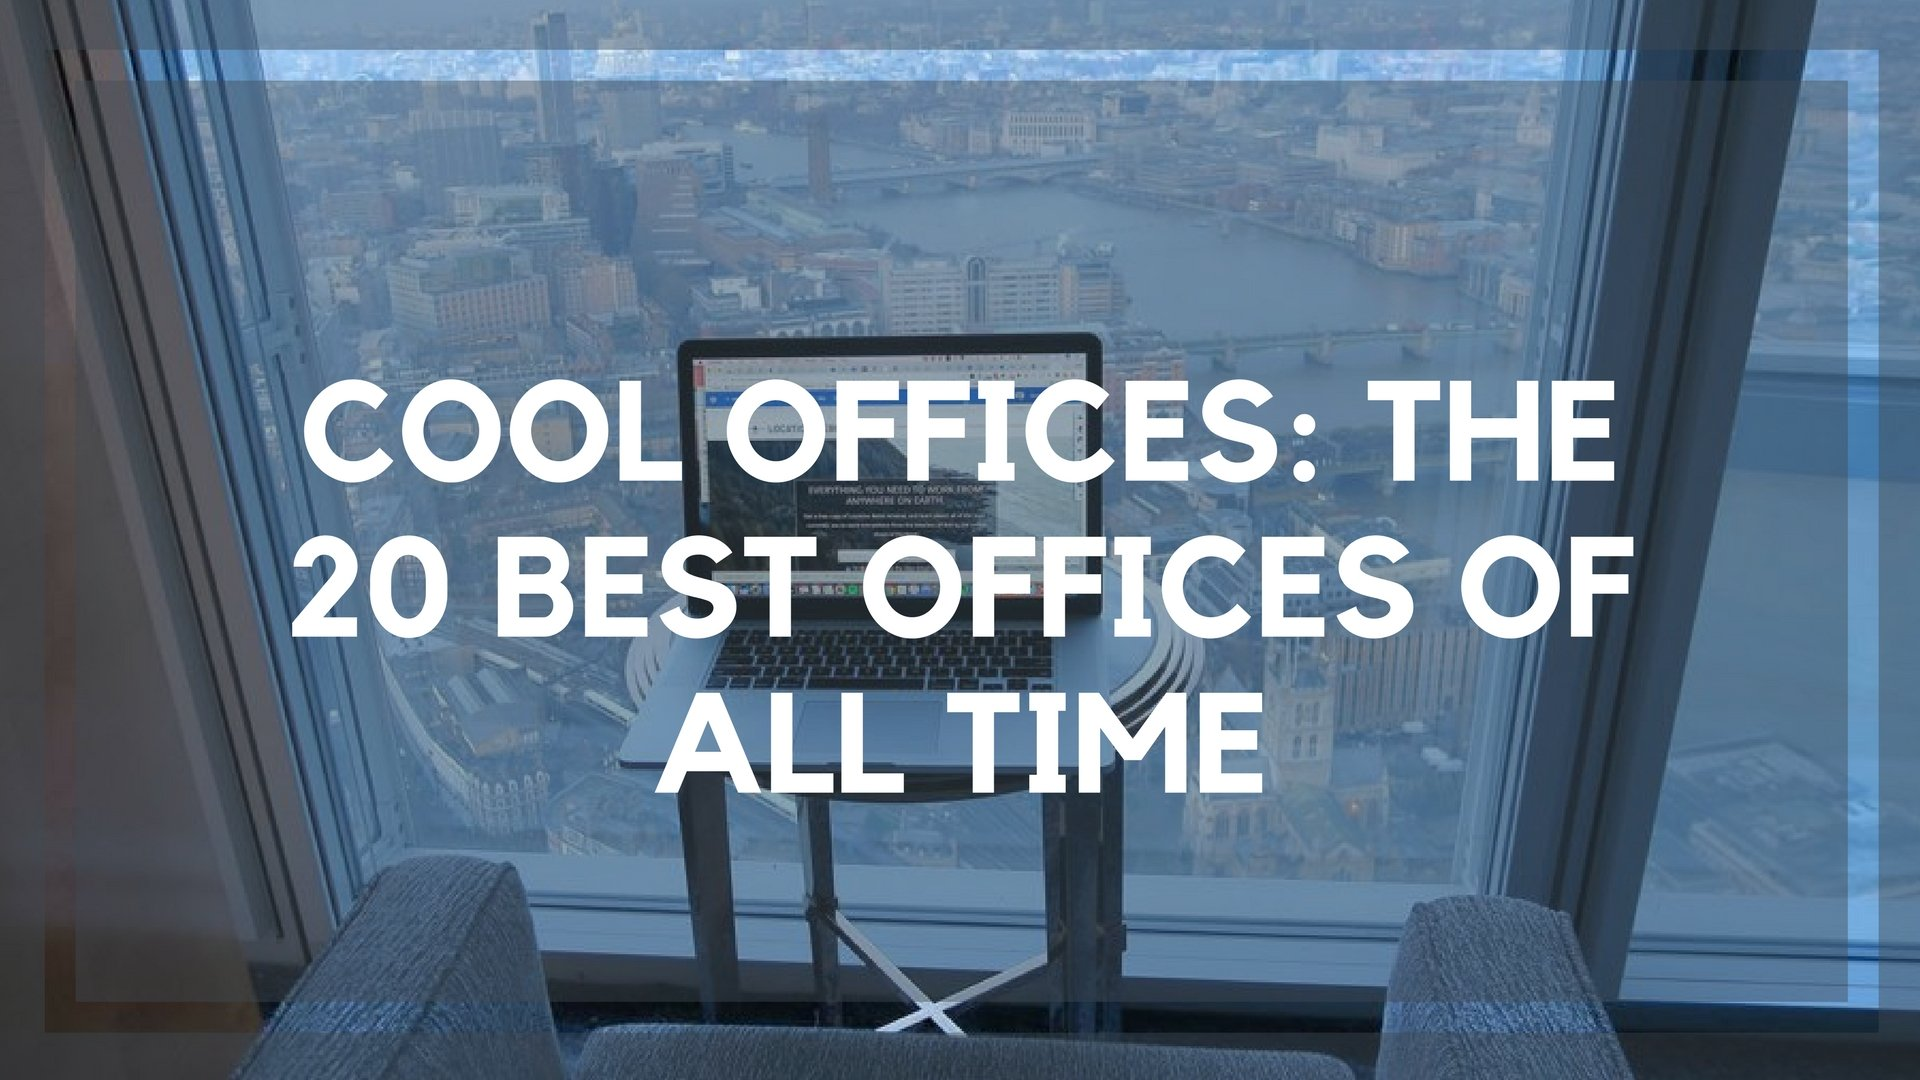 b6e4fe3cae6 Cool Offices  The 20 Coolest Offices from Across the Globe